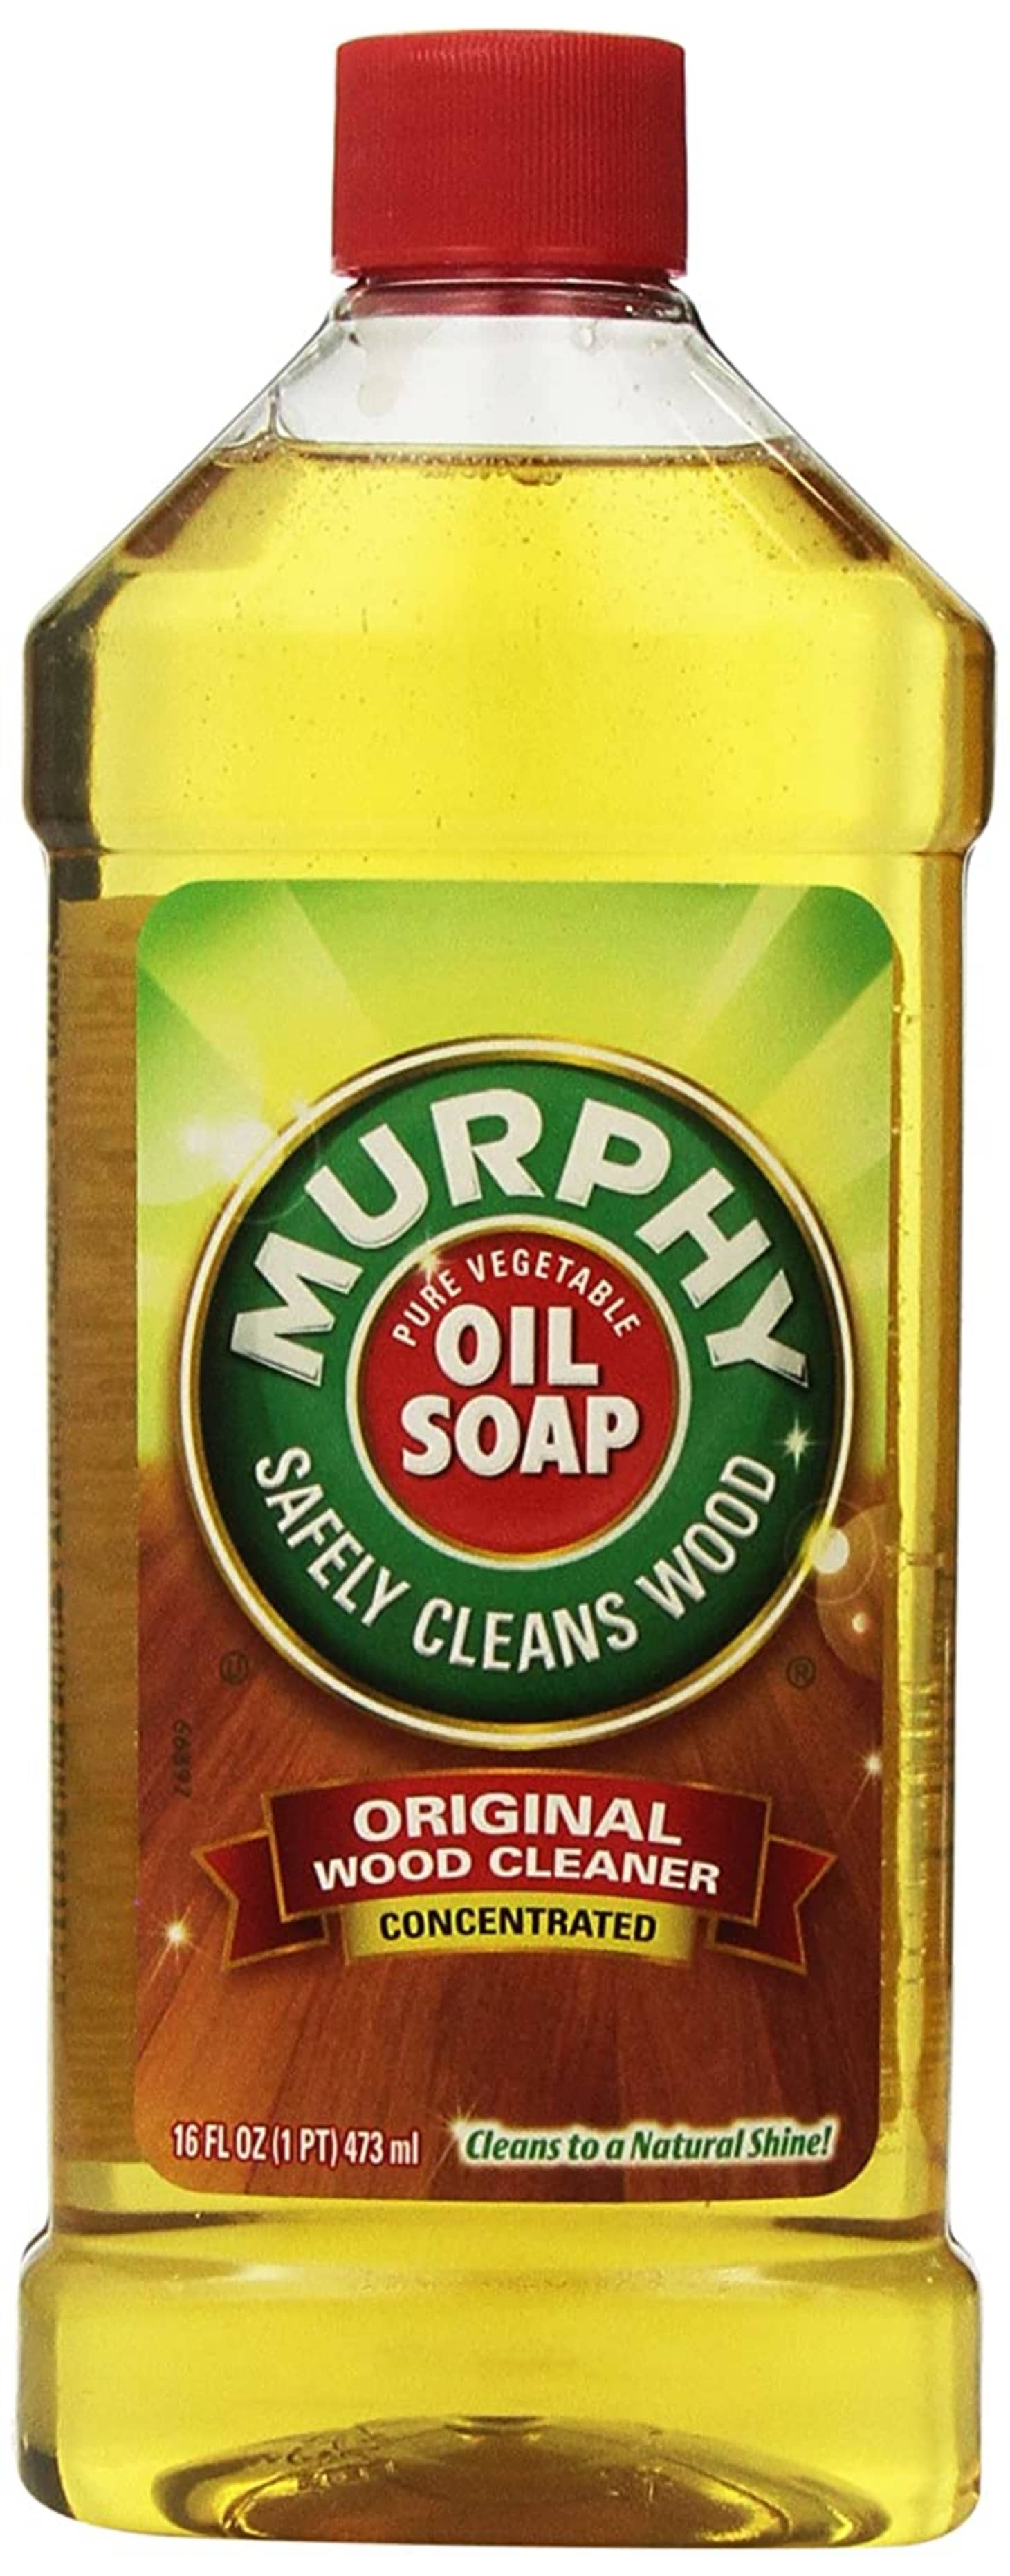 Other Safe Uses For Murphys Oil Soap Kitchn